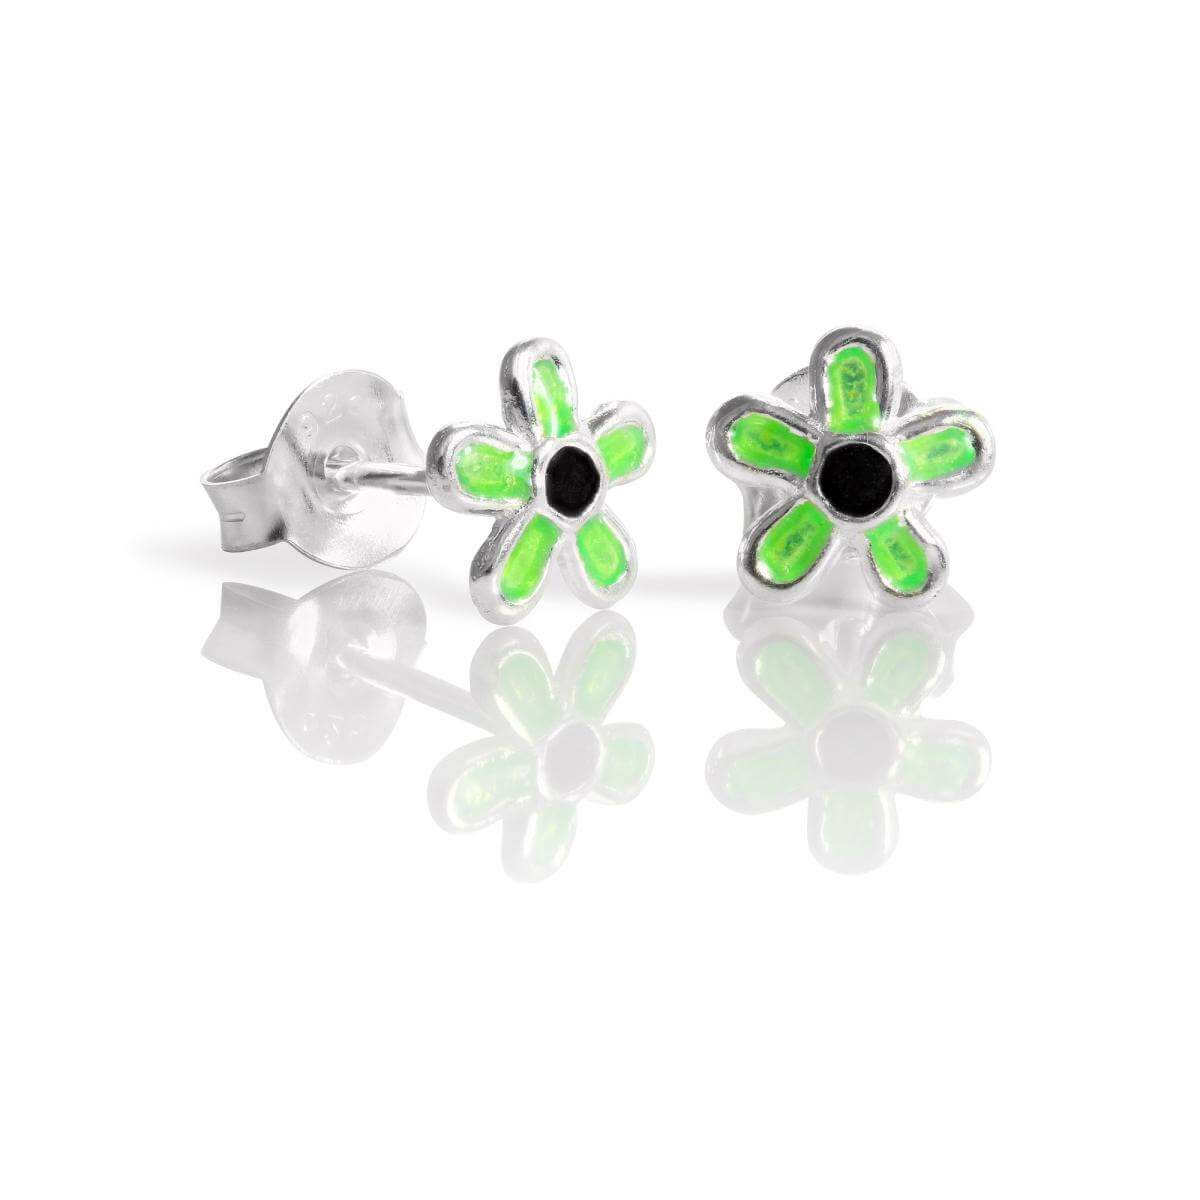 Sterling Silver & Enamel Flower Stud Earrings - Green